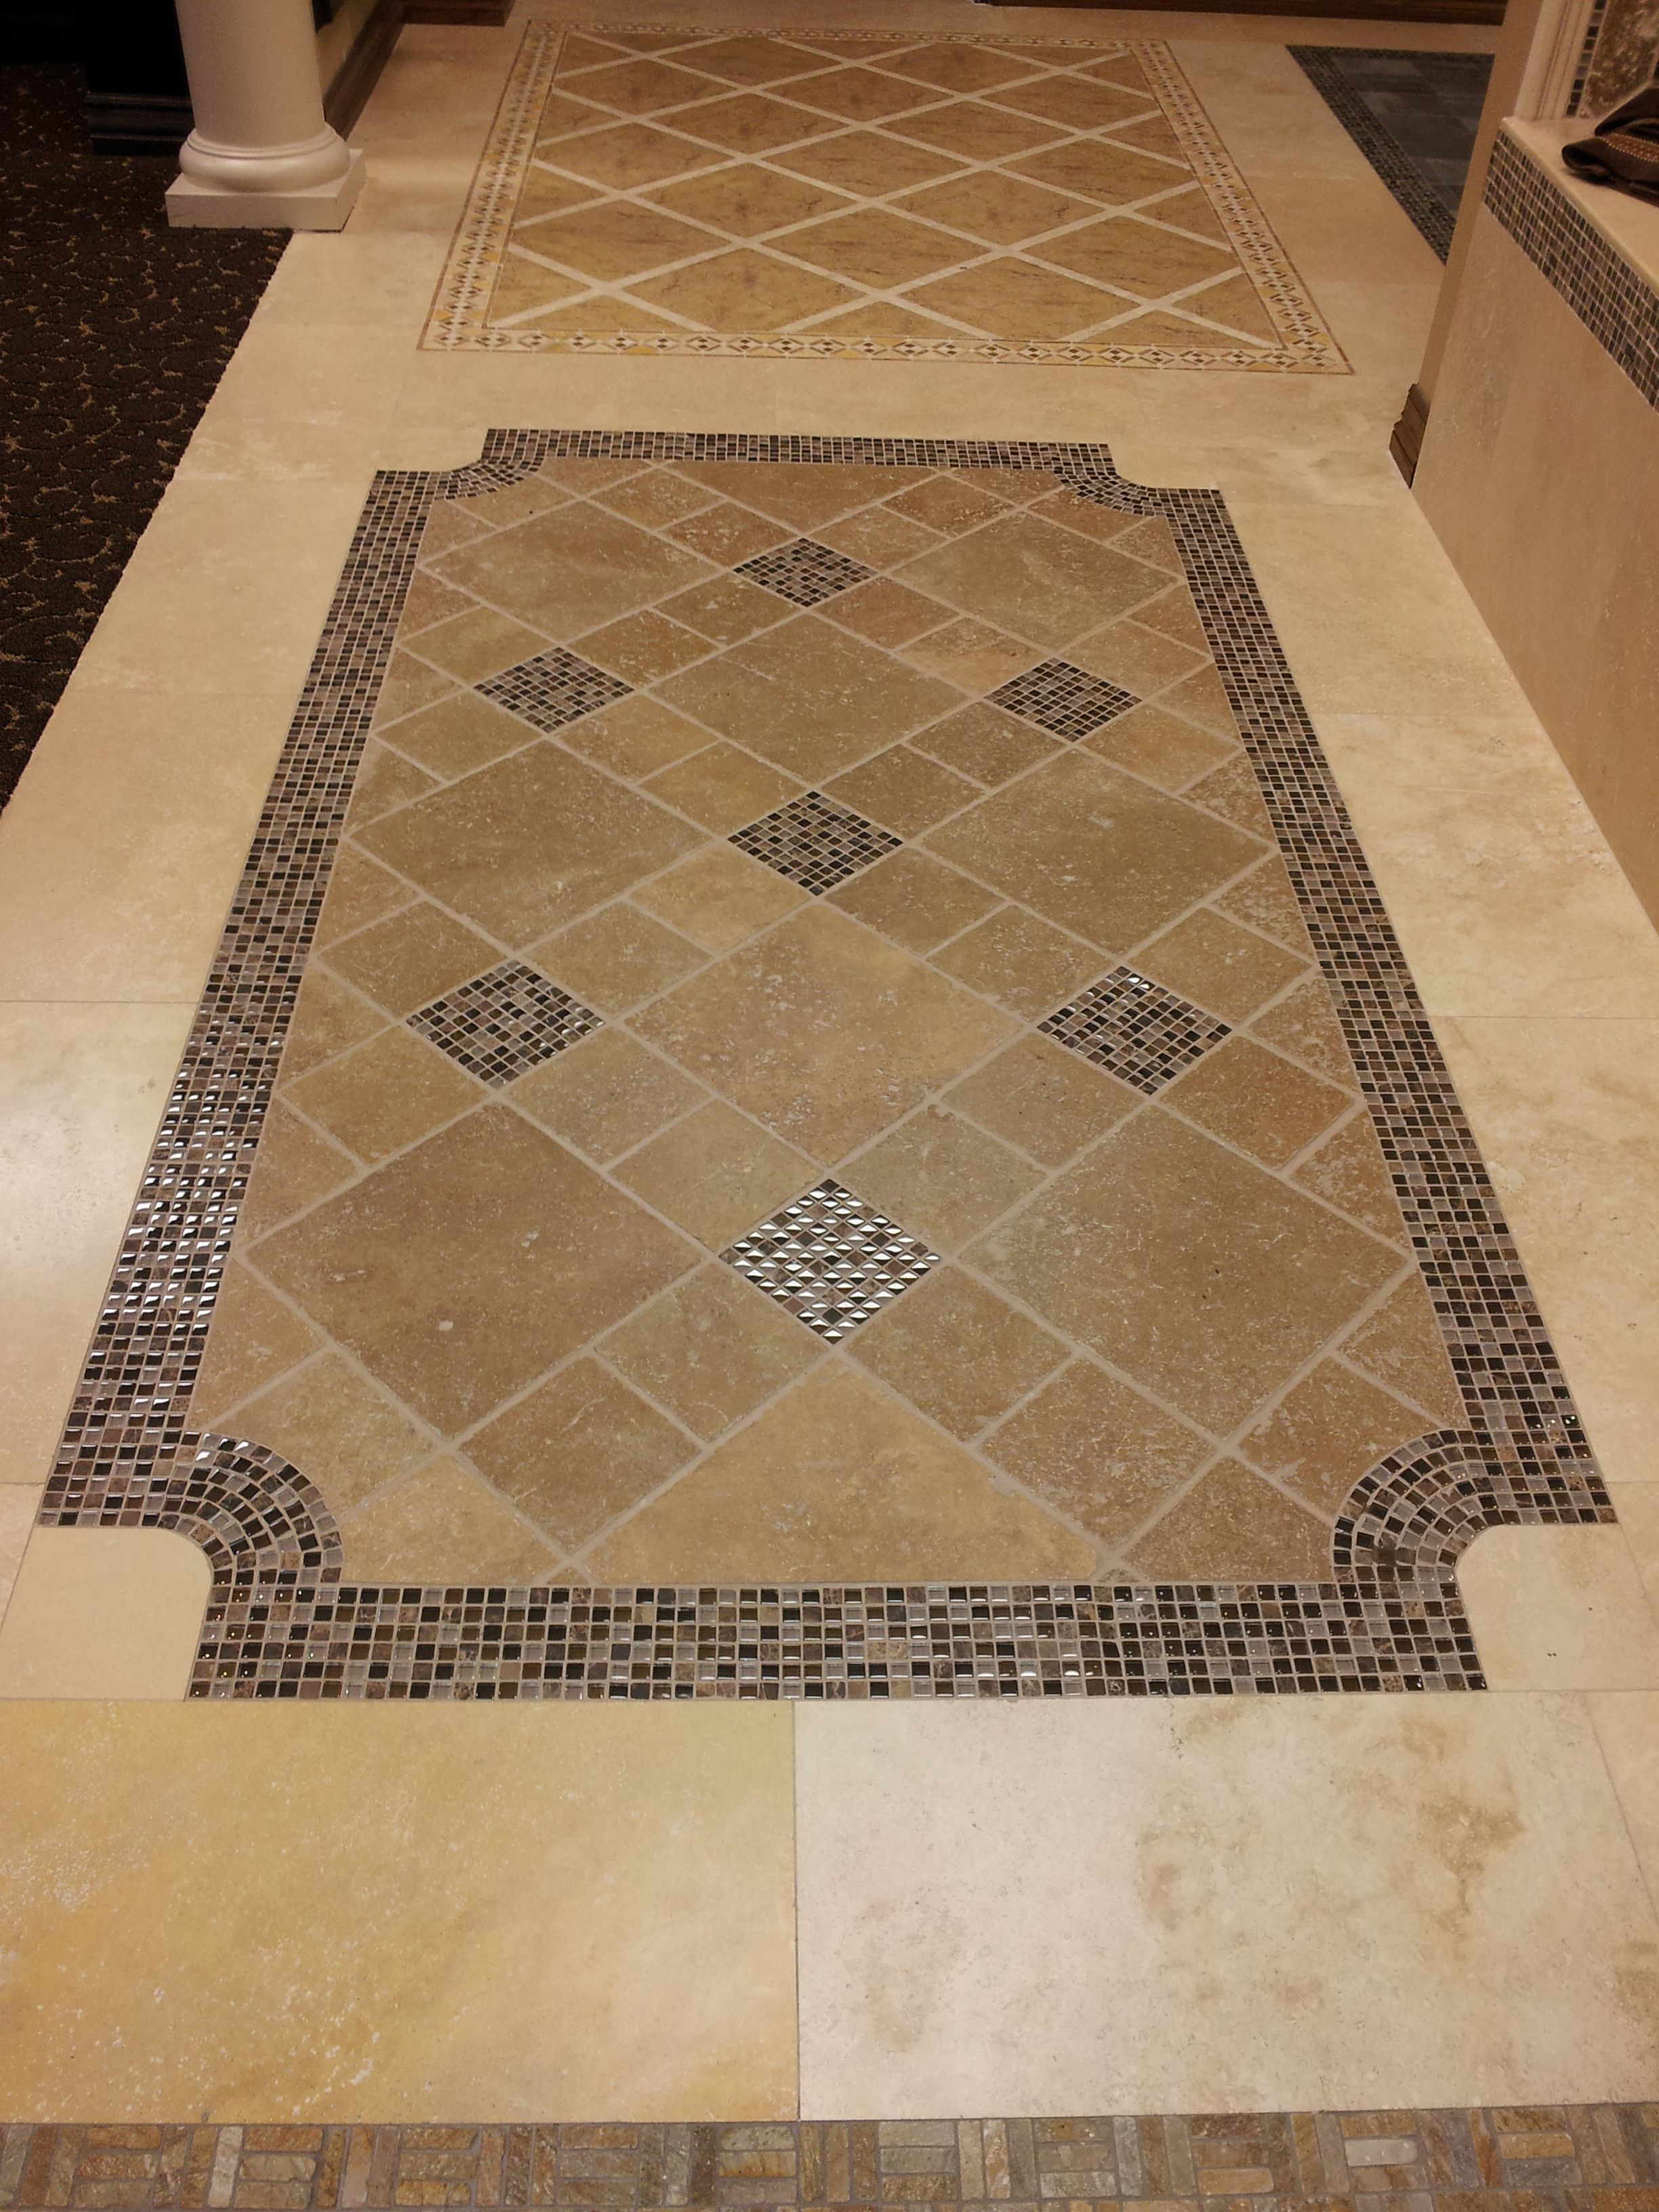 Tile floor design idea for the entry way entryway pinterest tile floor design idea for the entry way dailygadgetfo Image collections